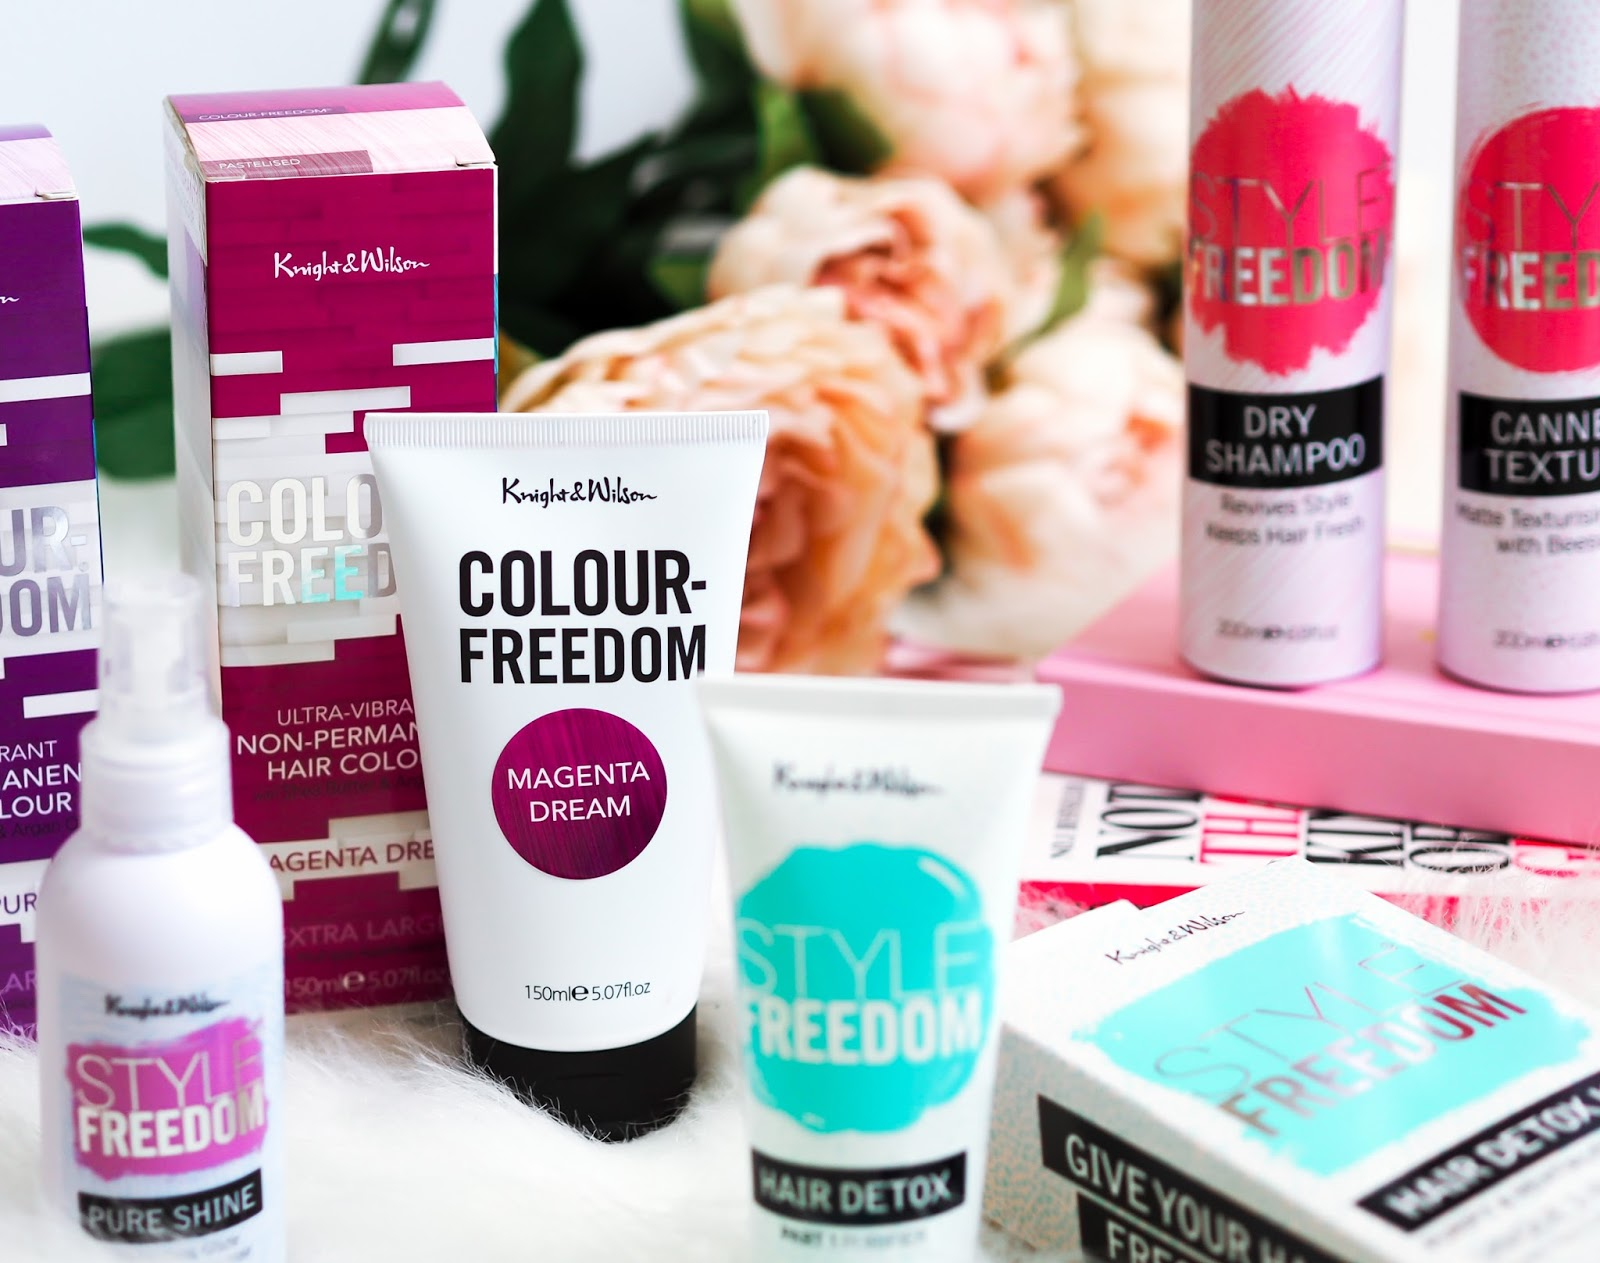 FESTIVAL HAIRCARE WITH STYLE FREEDOM